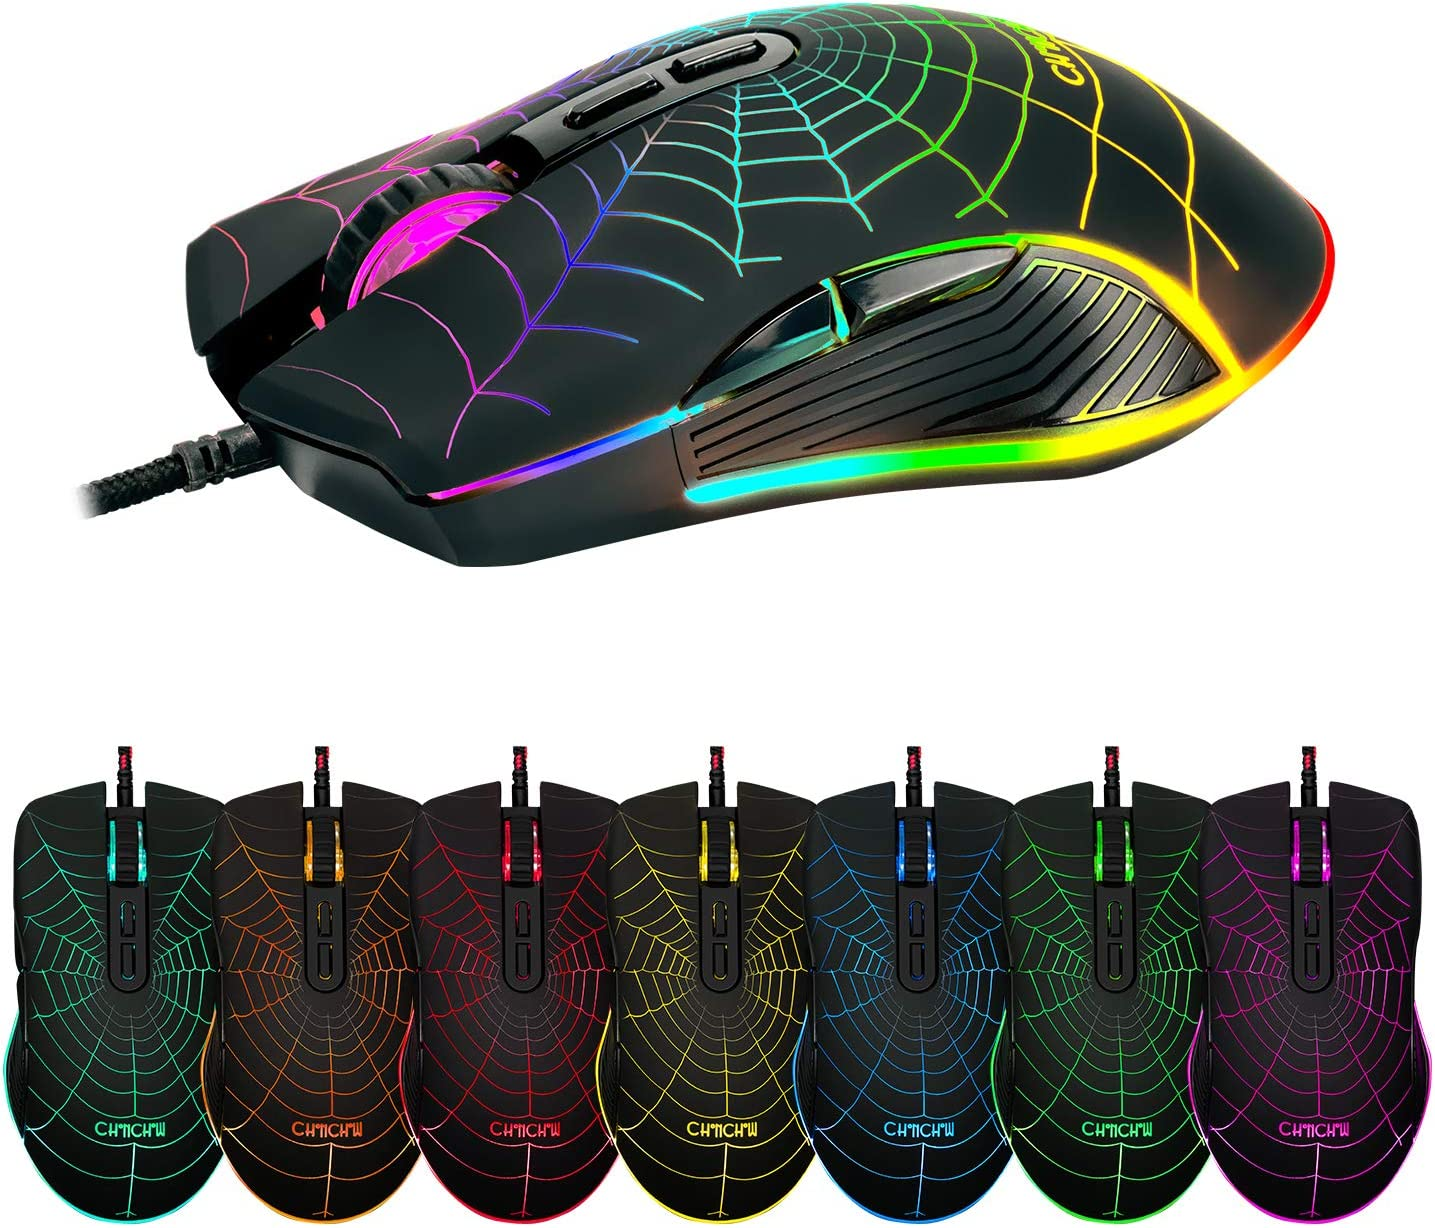 CHONCHOW Wired RGB Gaming Mouse,USB Computer Mice with LED Backlit 4 Adjustable DPI up to 7200, Ergonomic Gaming Mouse with 6 Programmable Buttons Compatible with PS4 Xbox one Mac PC Computer Notebook